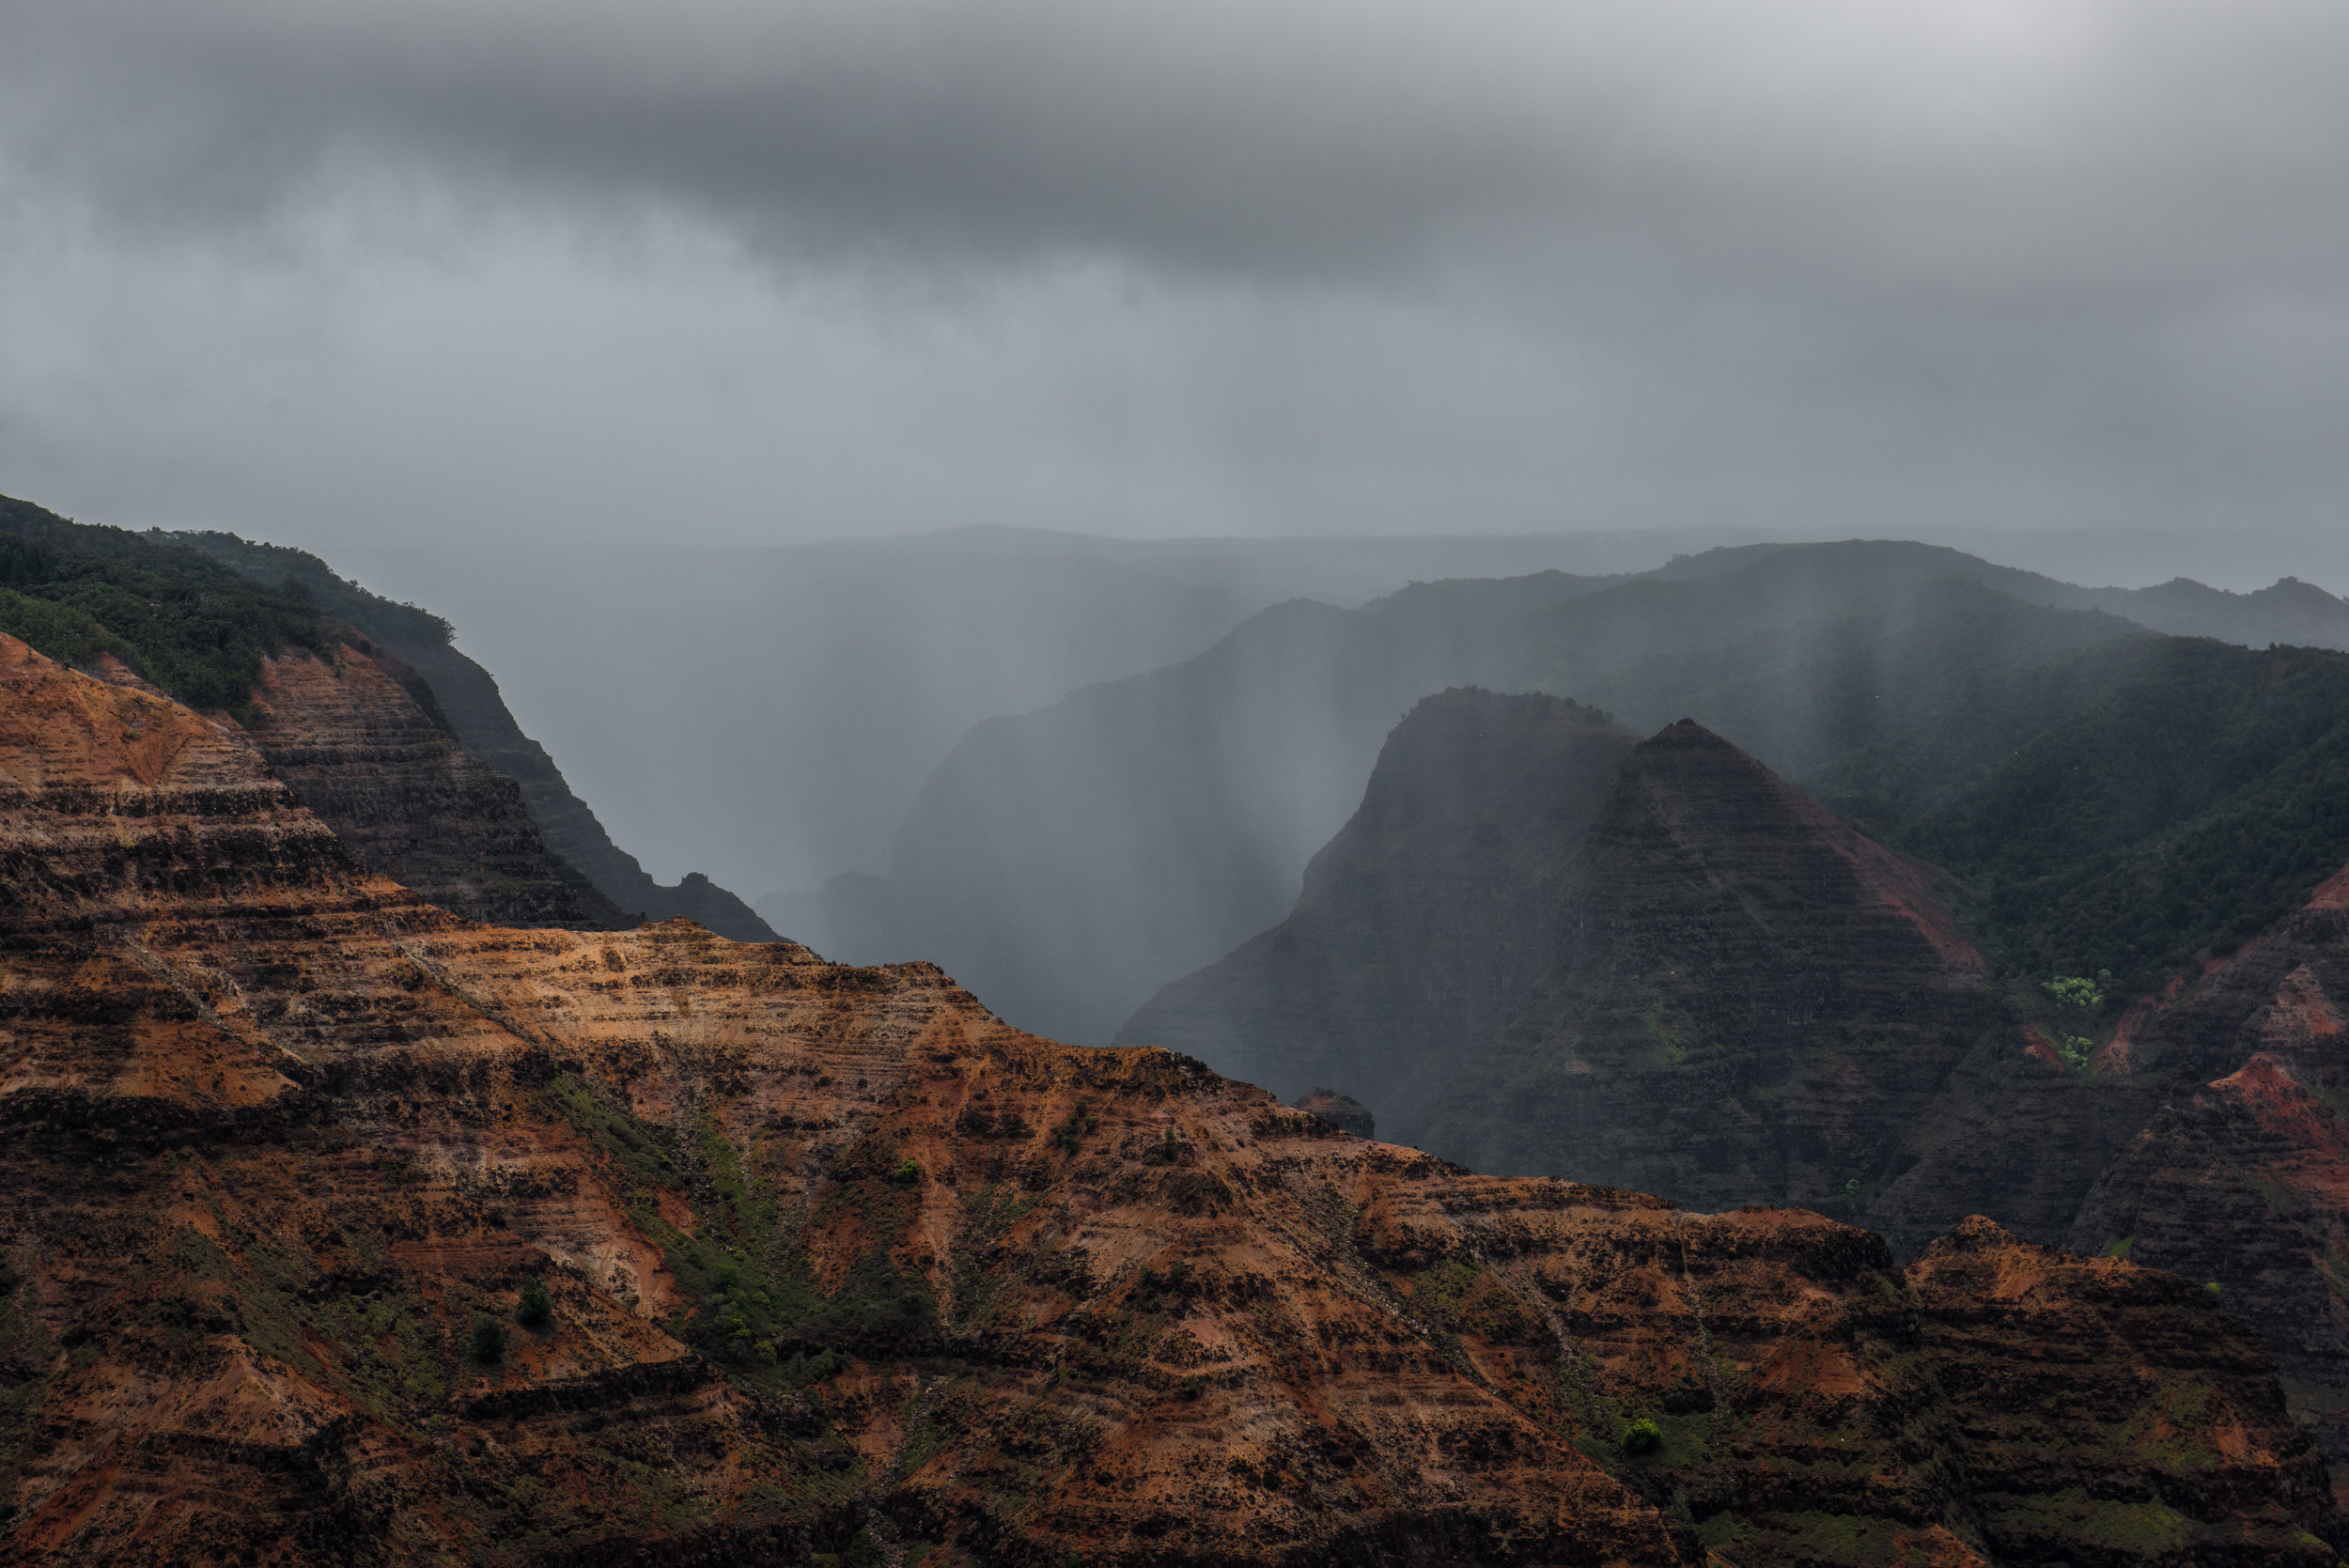 Waimea canyon last Saturday in the storm.